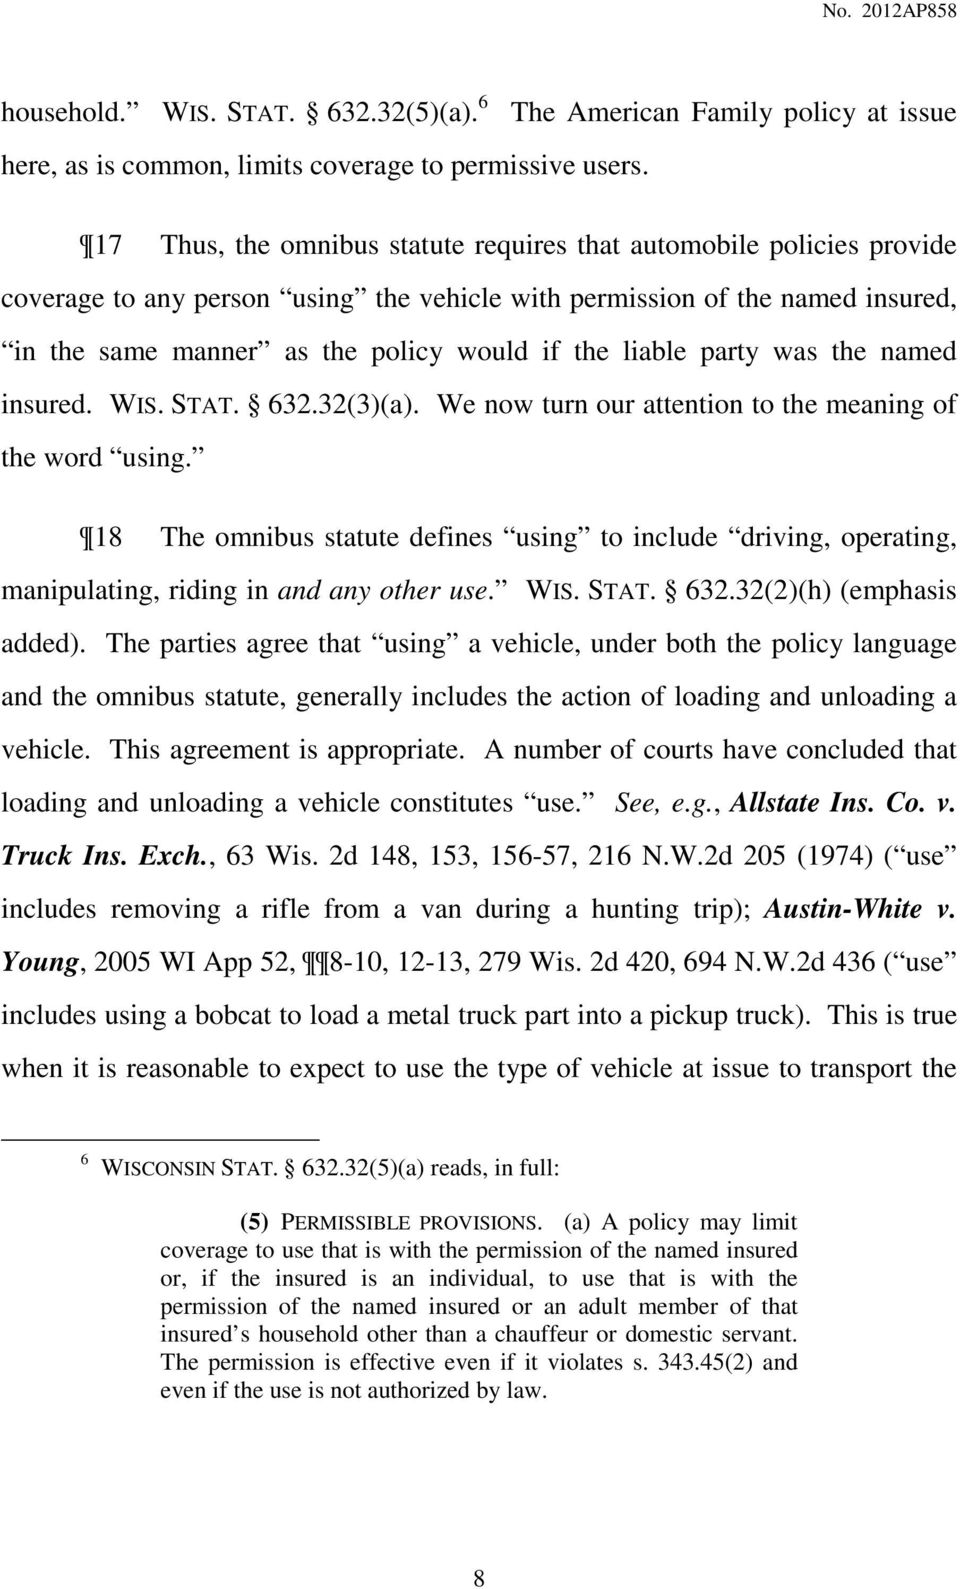 liable party was the named insured. WIS. STAT. 632.32(3)(a). We now turn our attention to the meaning of the word using.